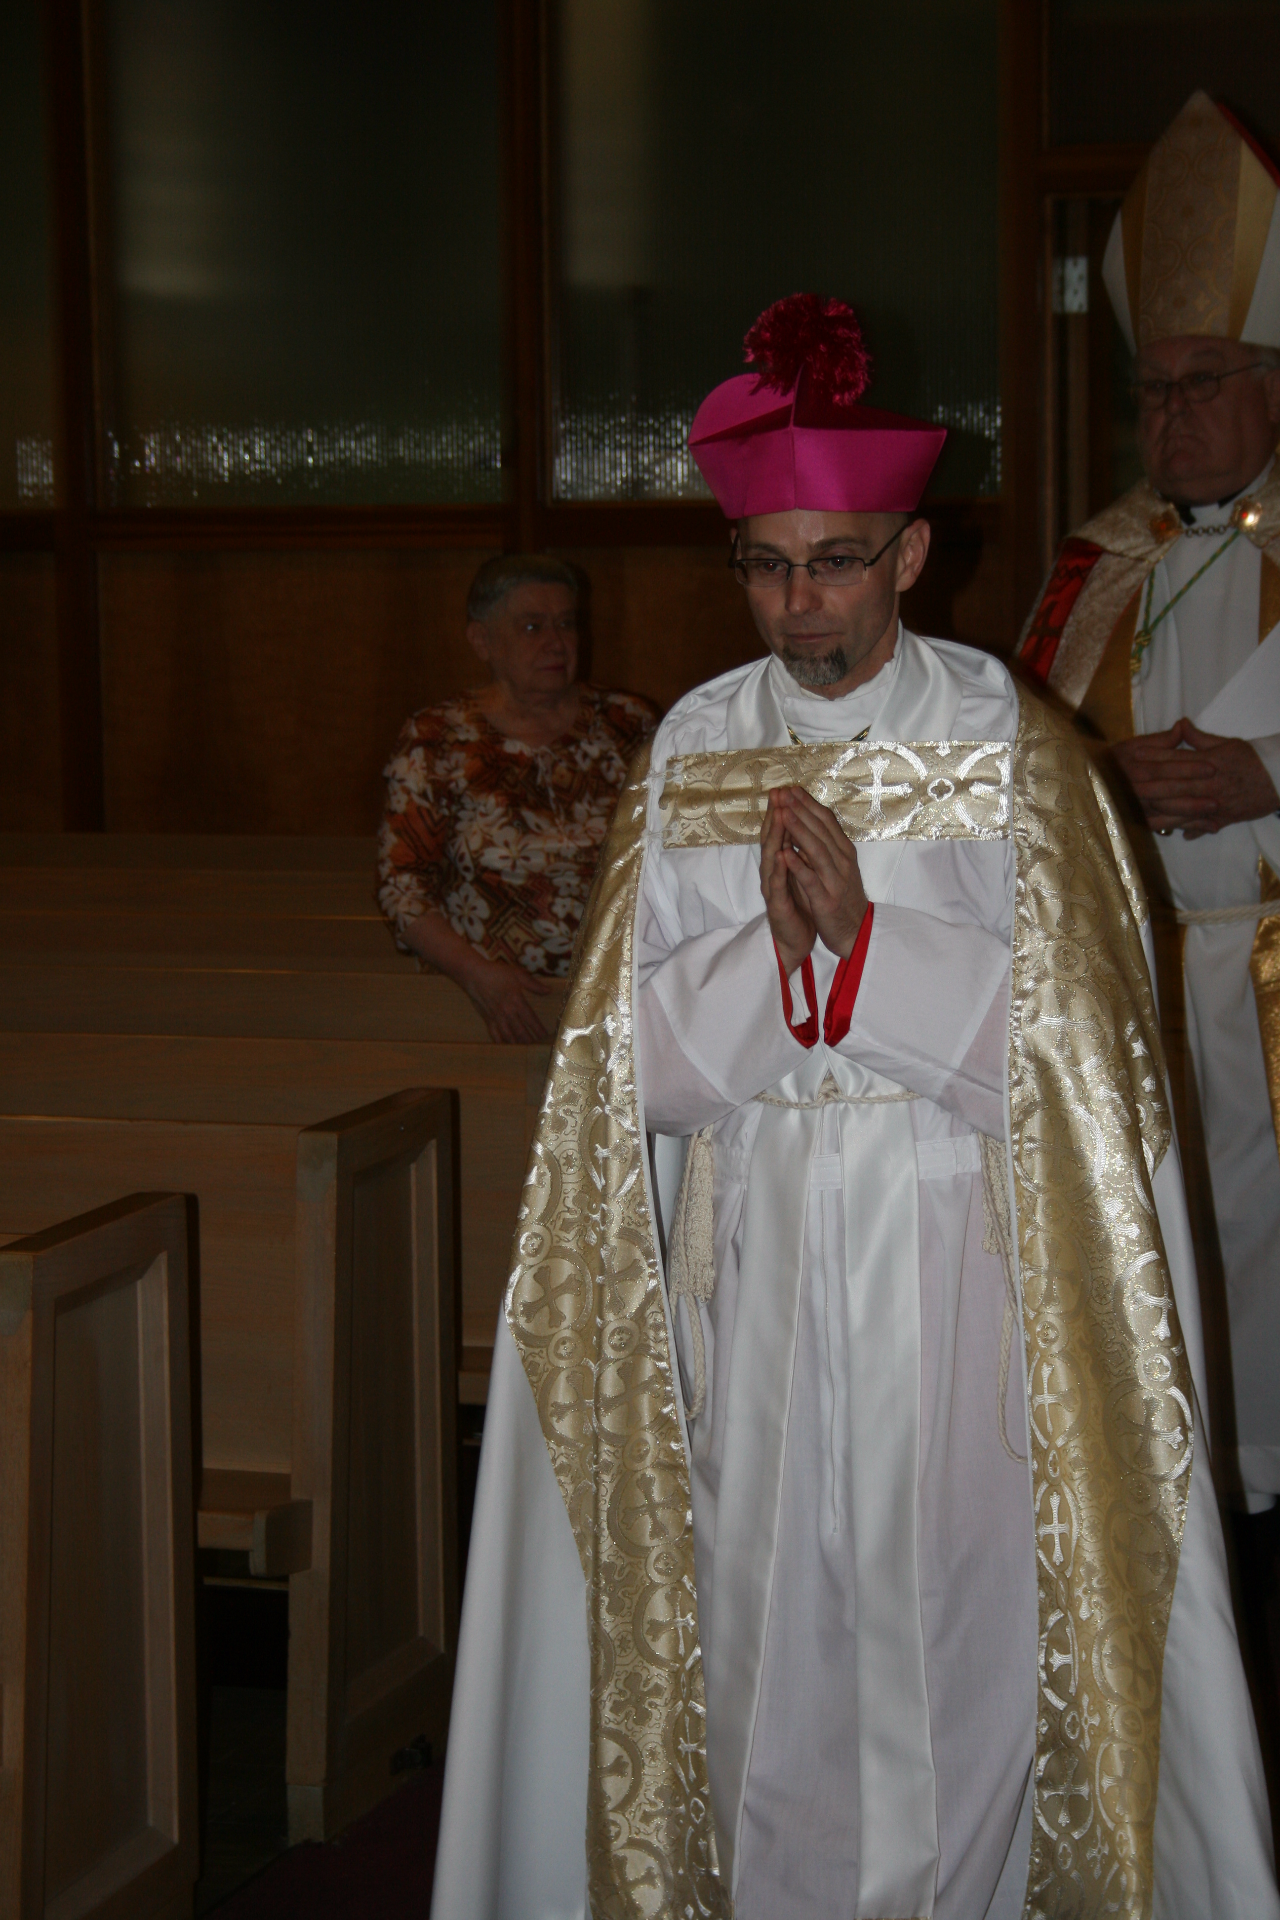 The Bishop-elect in procession